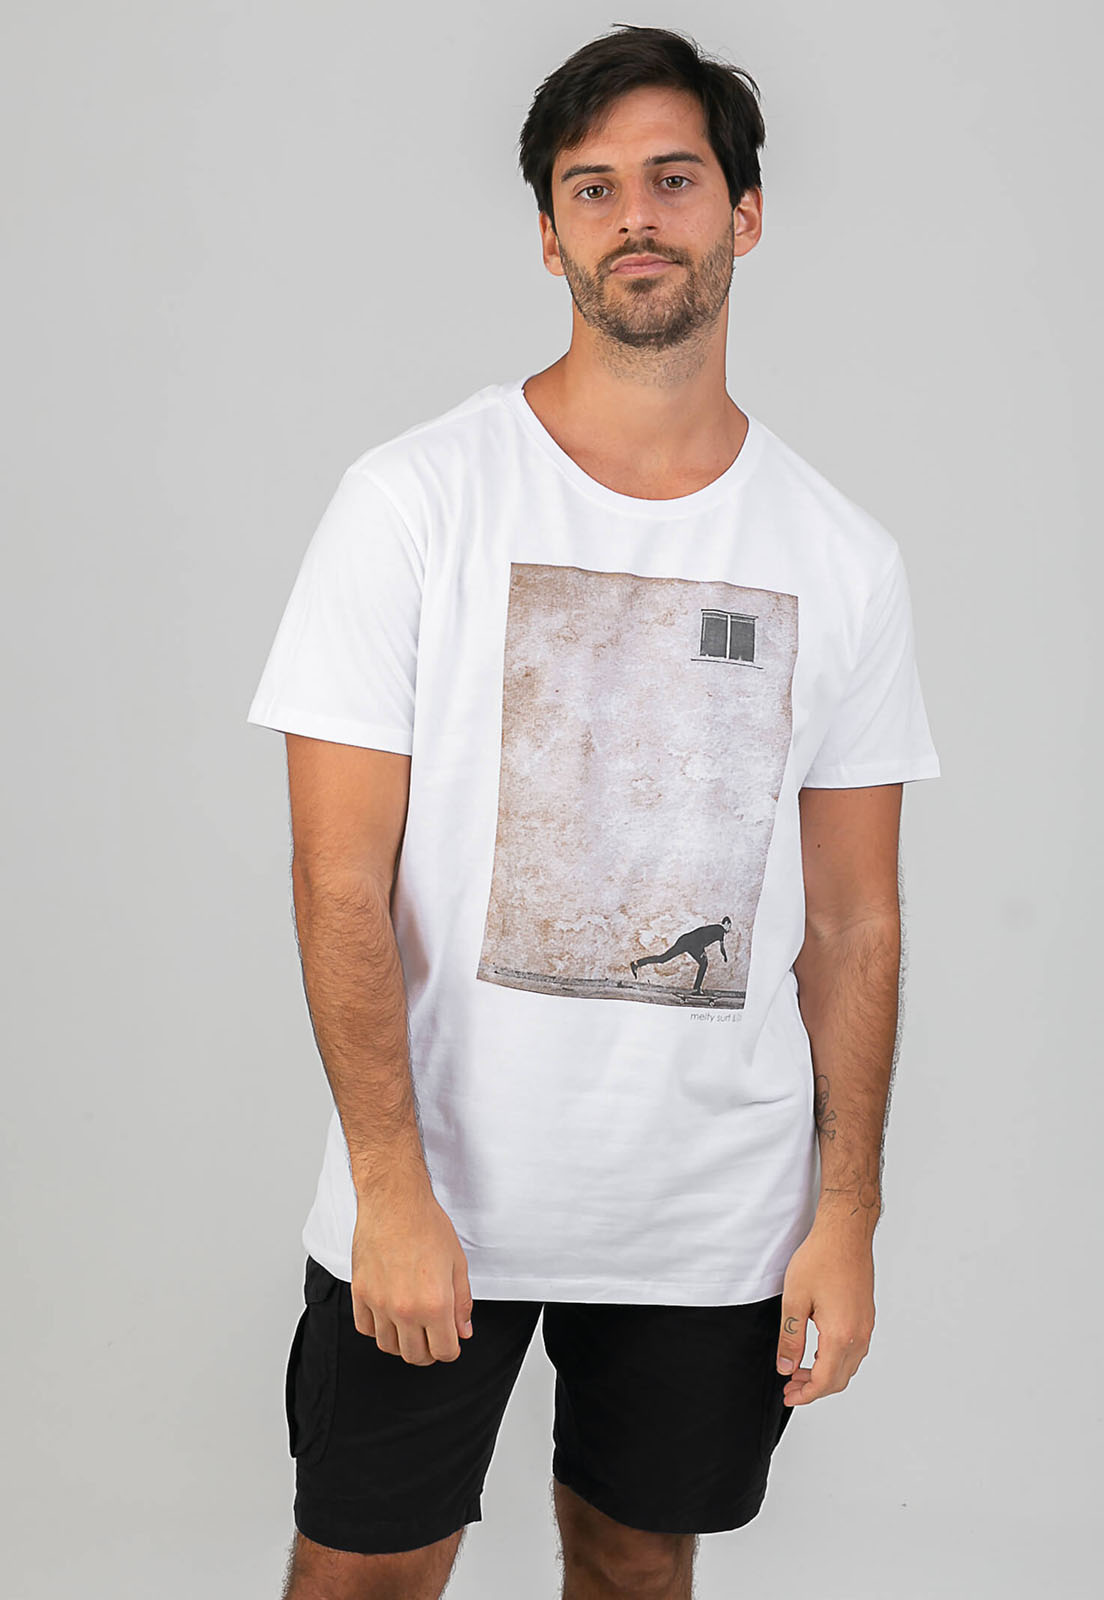 T-shirt Remada Branco melty  - melty surf & Co.